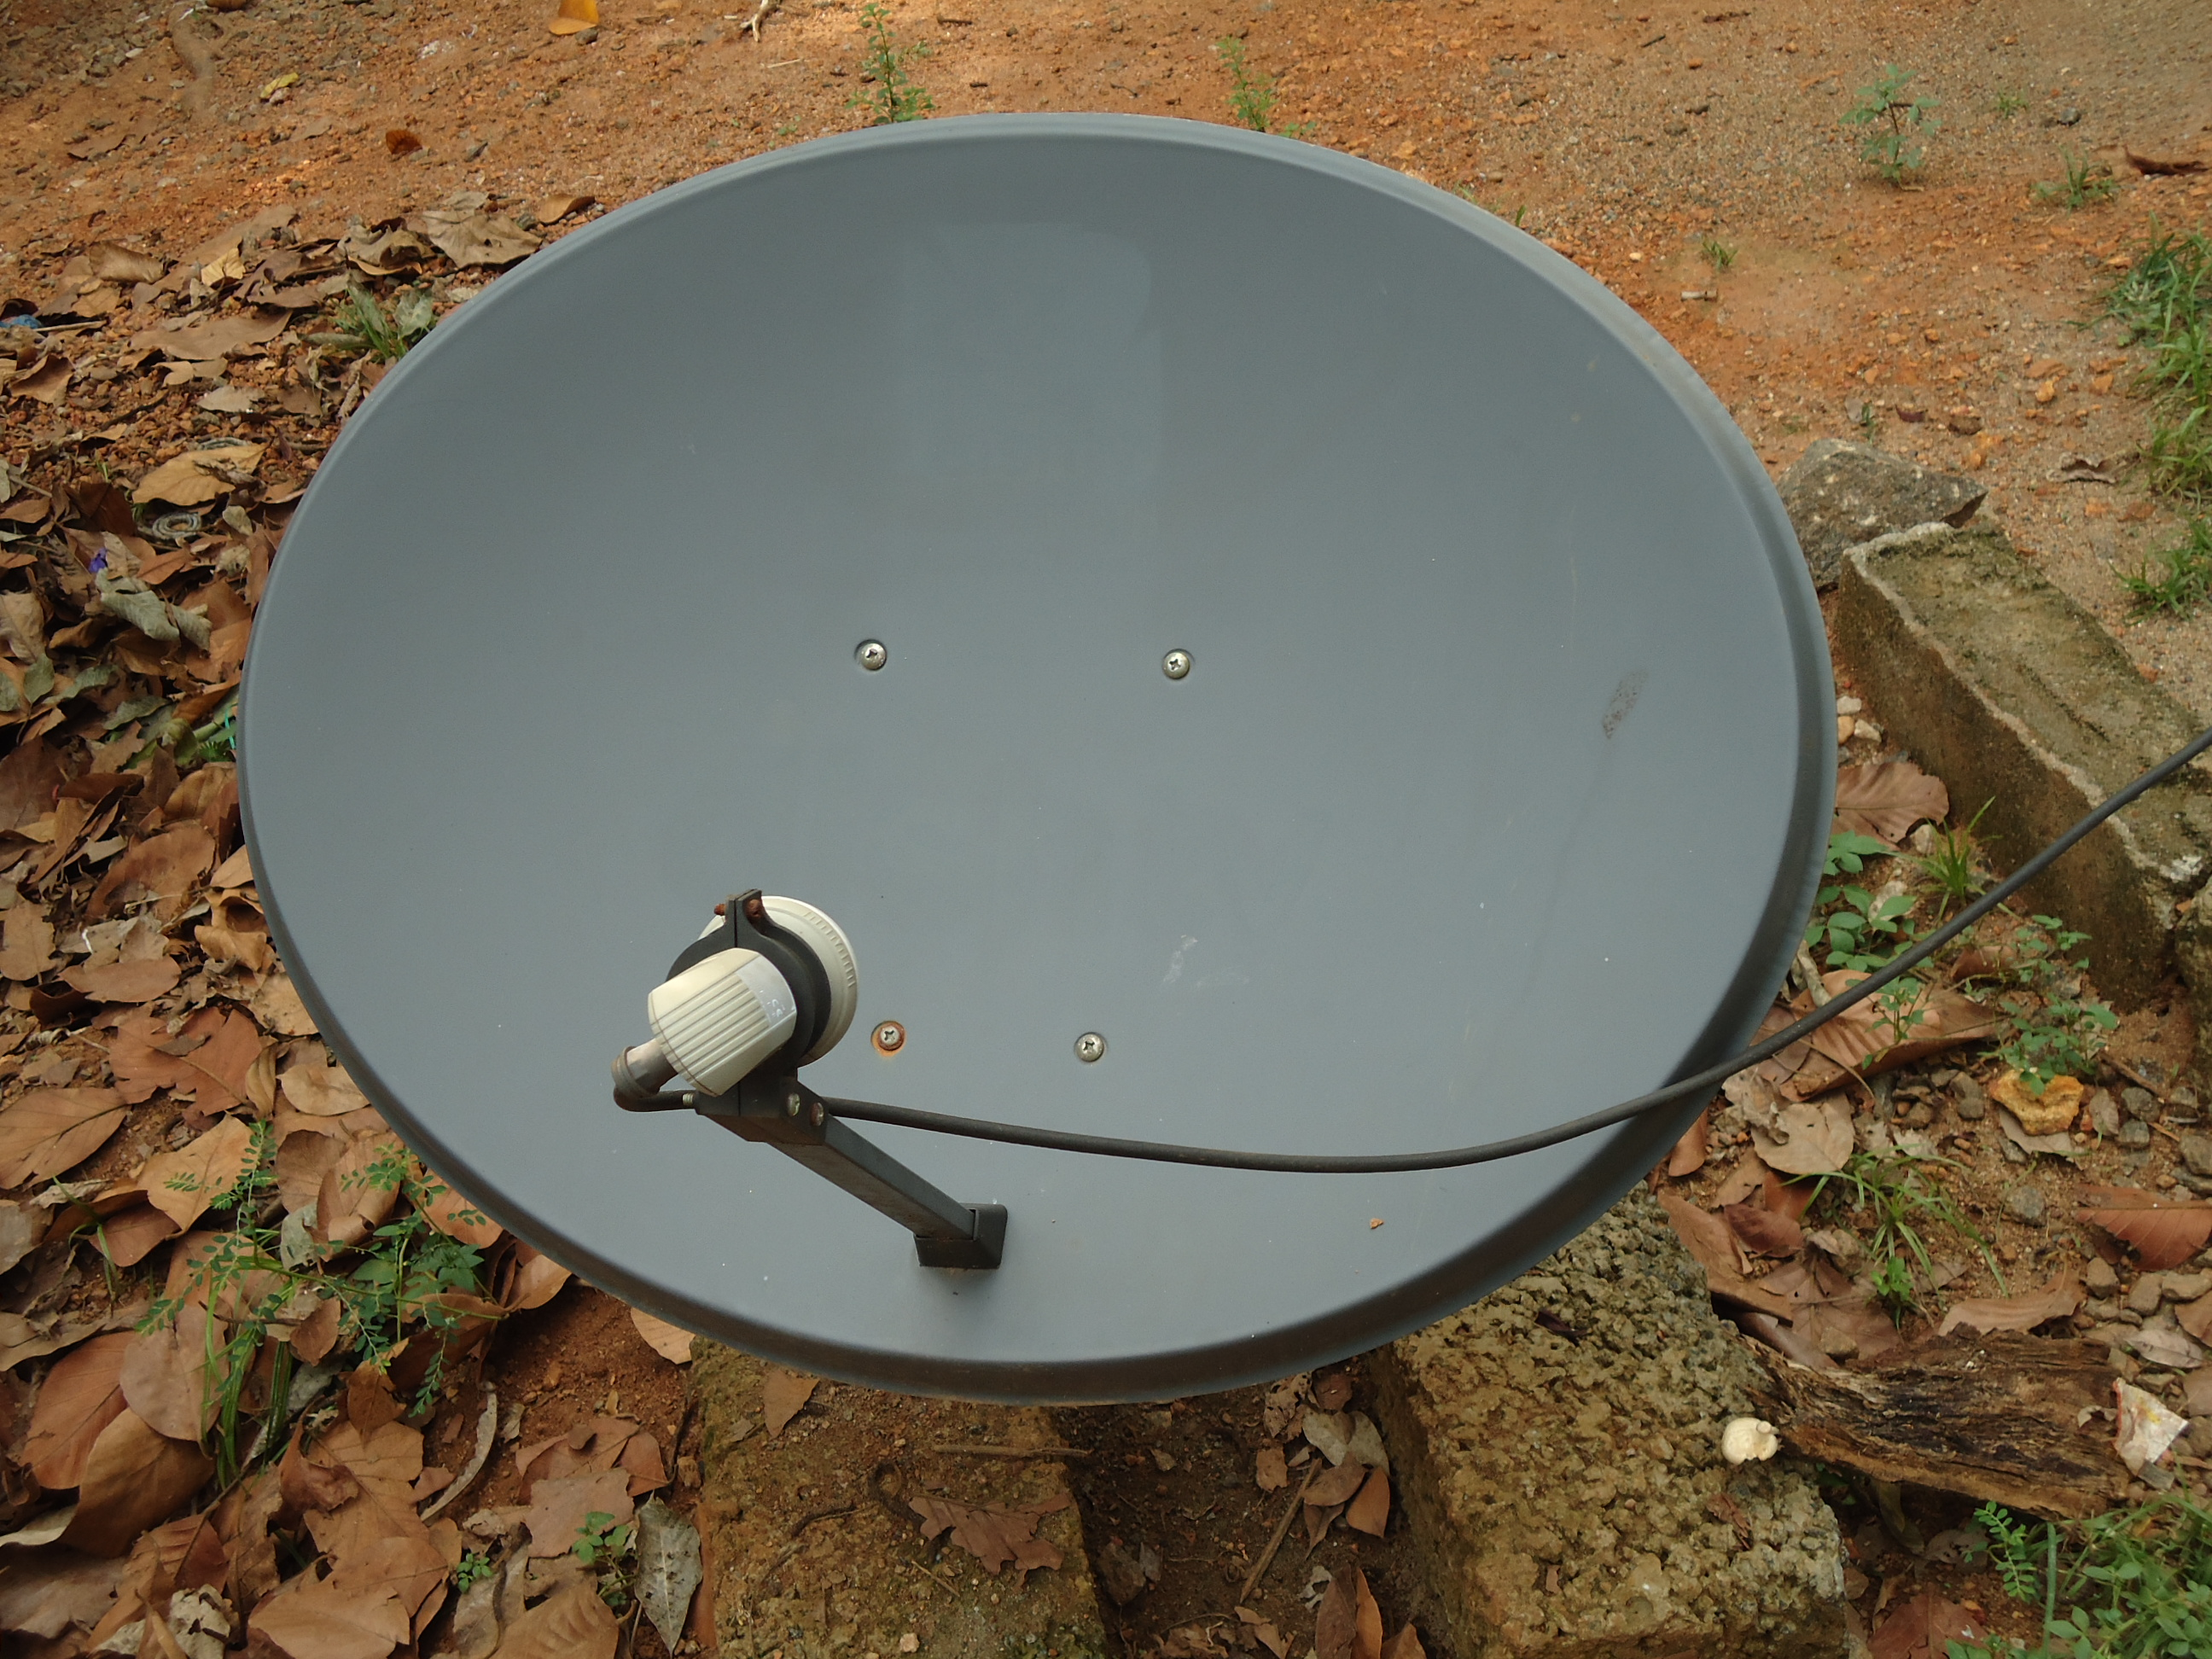 Ku-band satellite dish